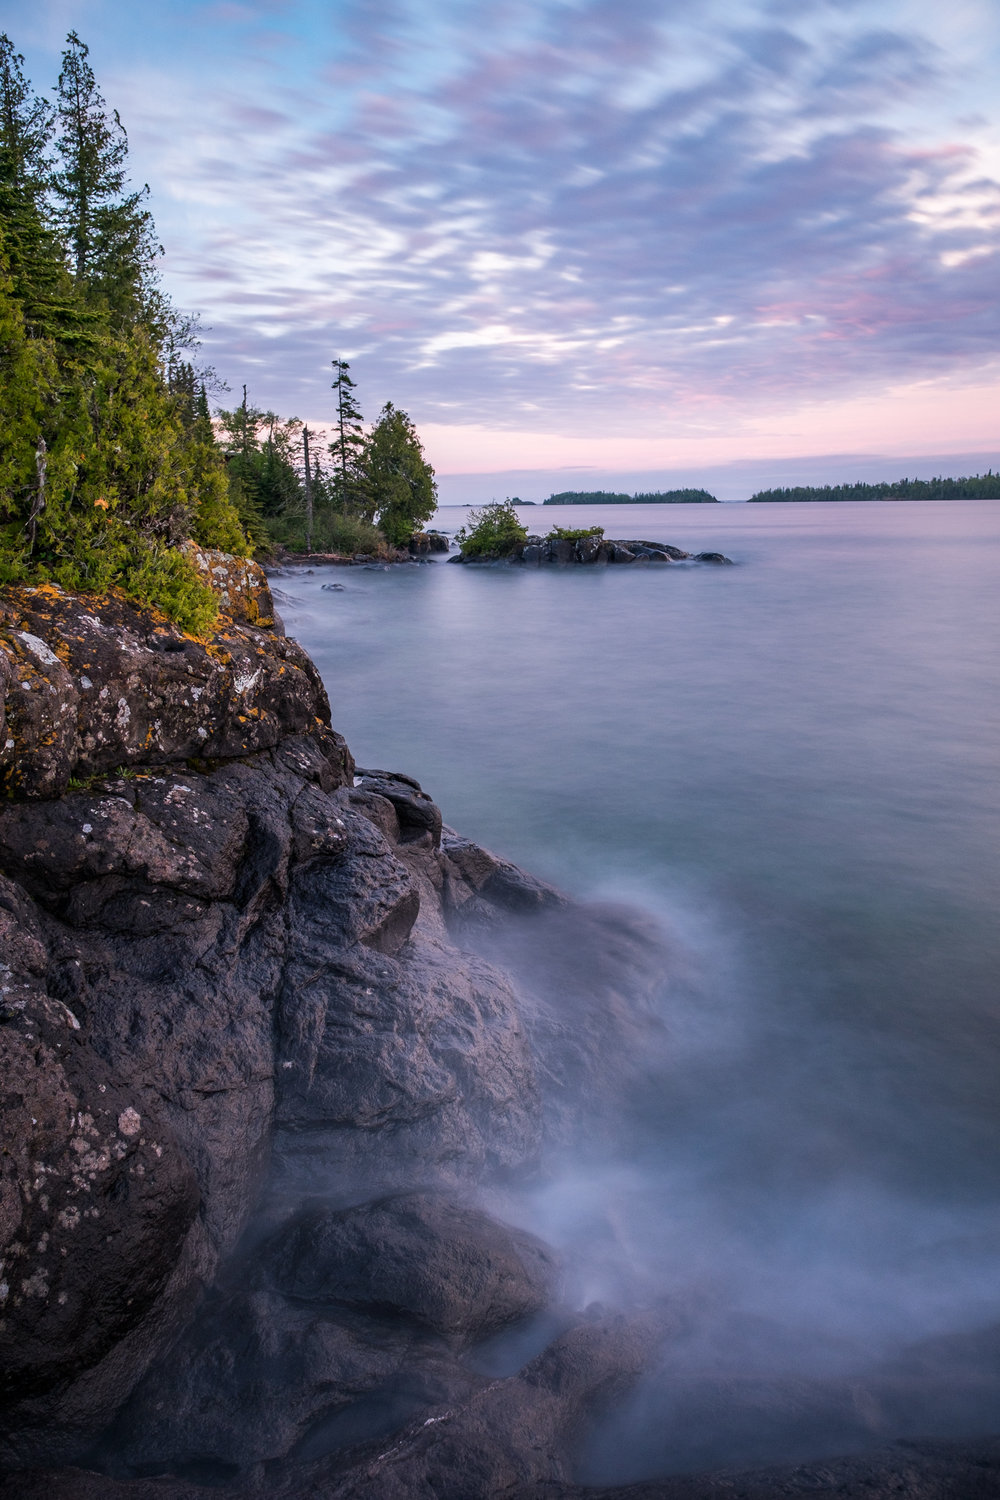 20160610-JI-Isle Royale National Park-_DSF0473.jpg